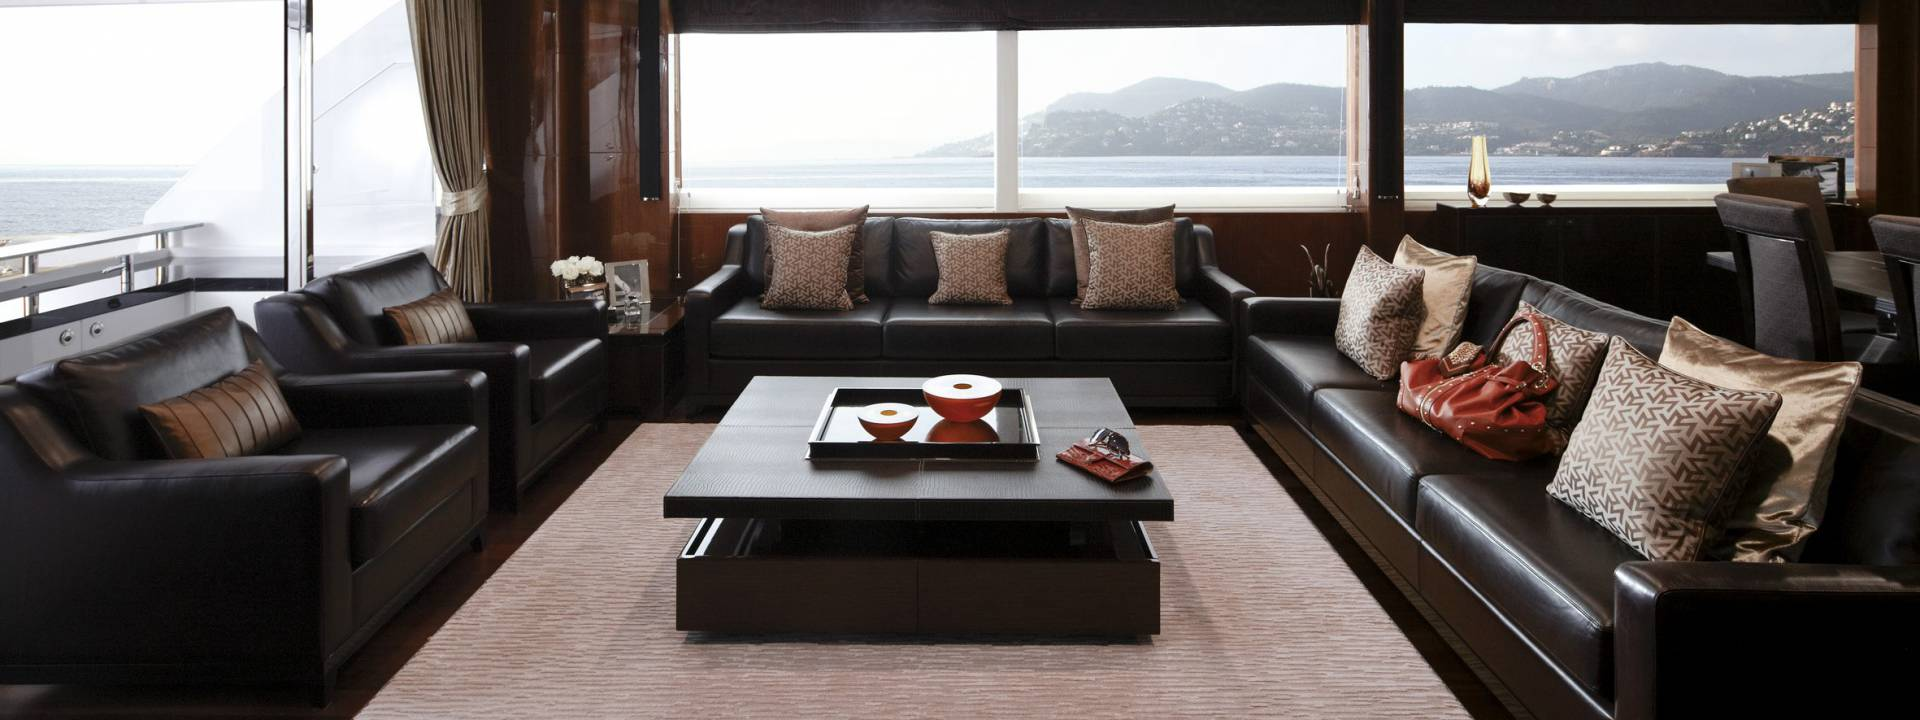 Luxury yacht living room, Yvette Taylor London